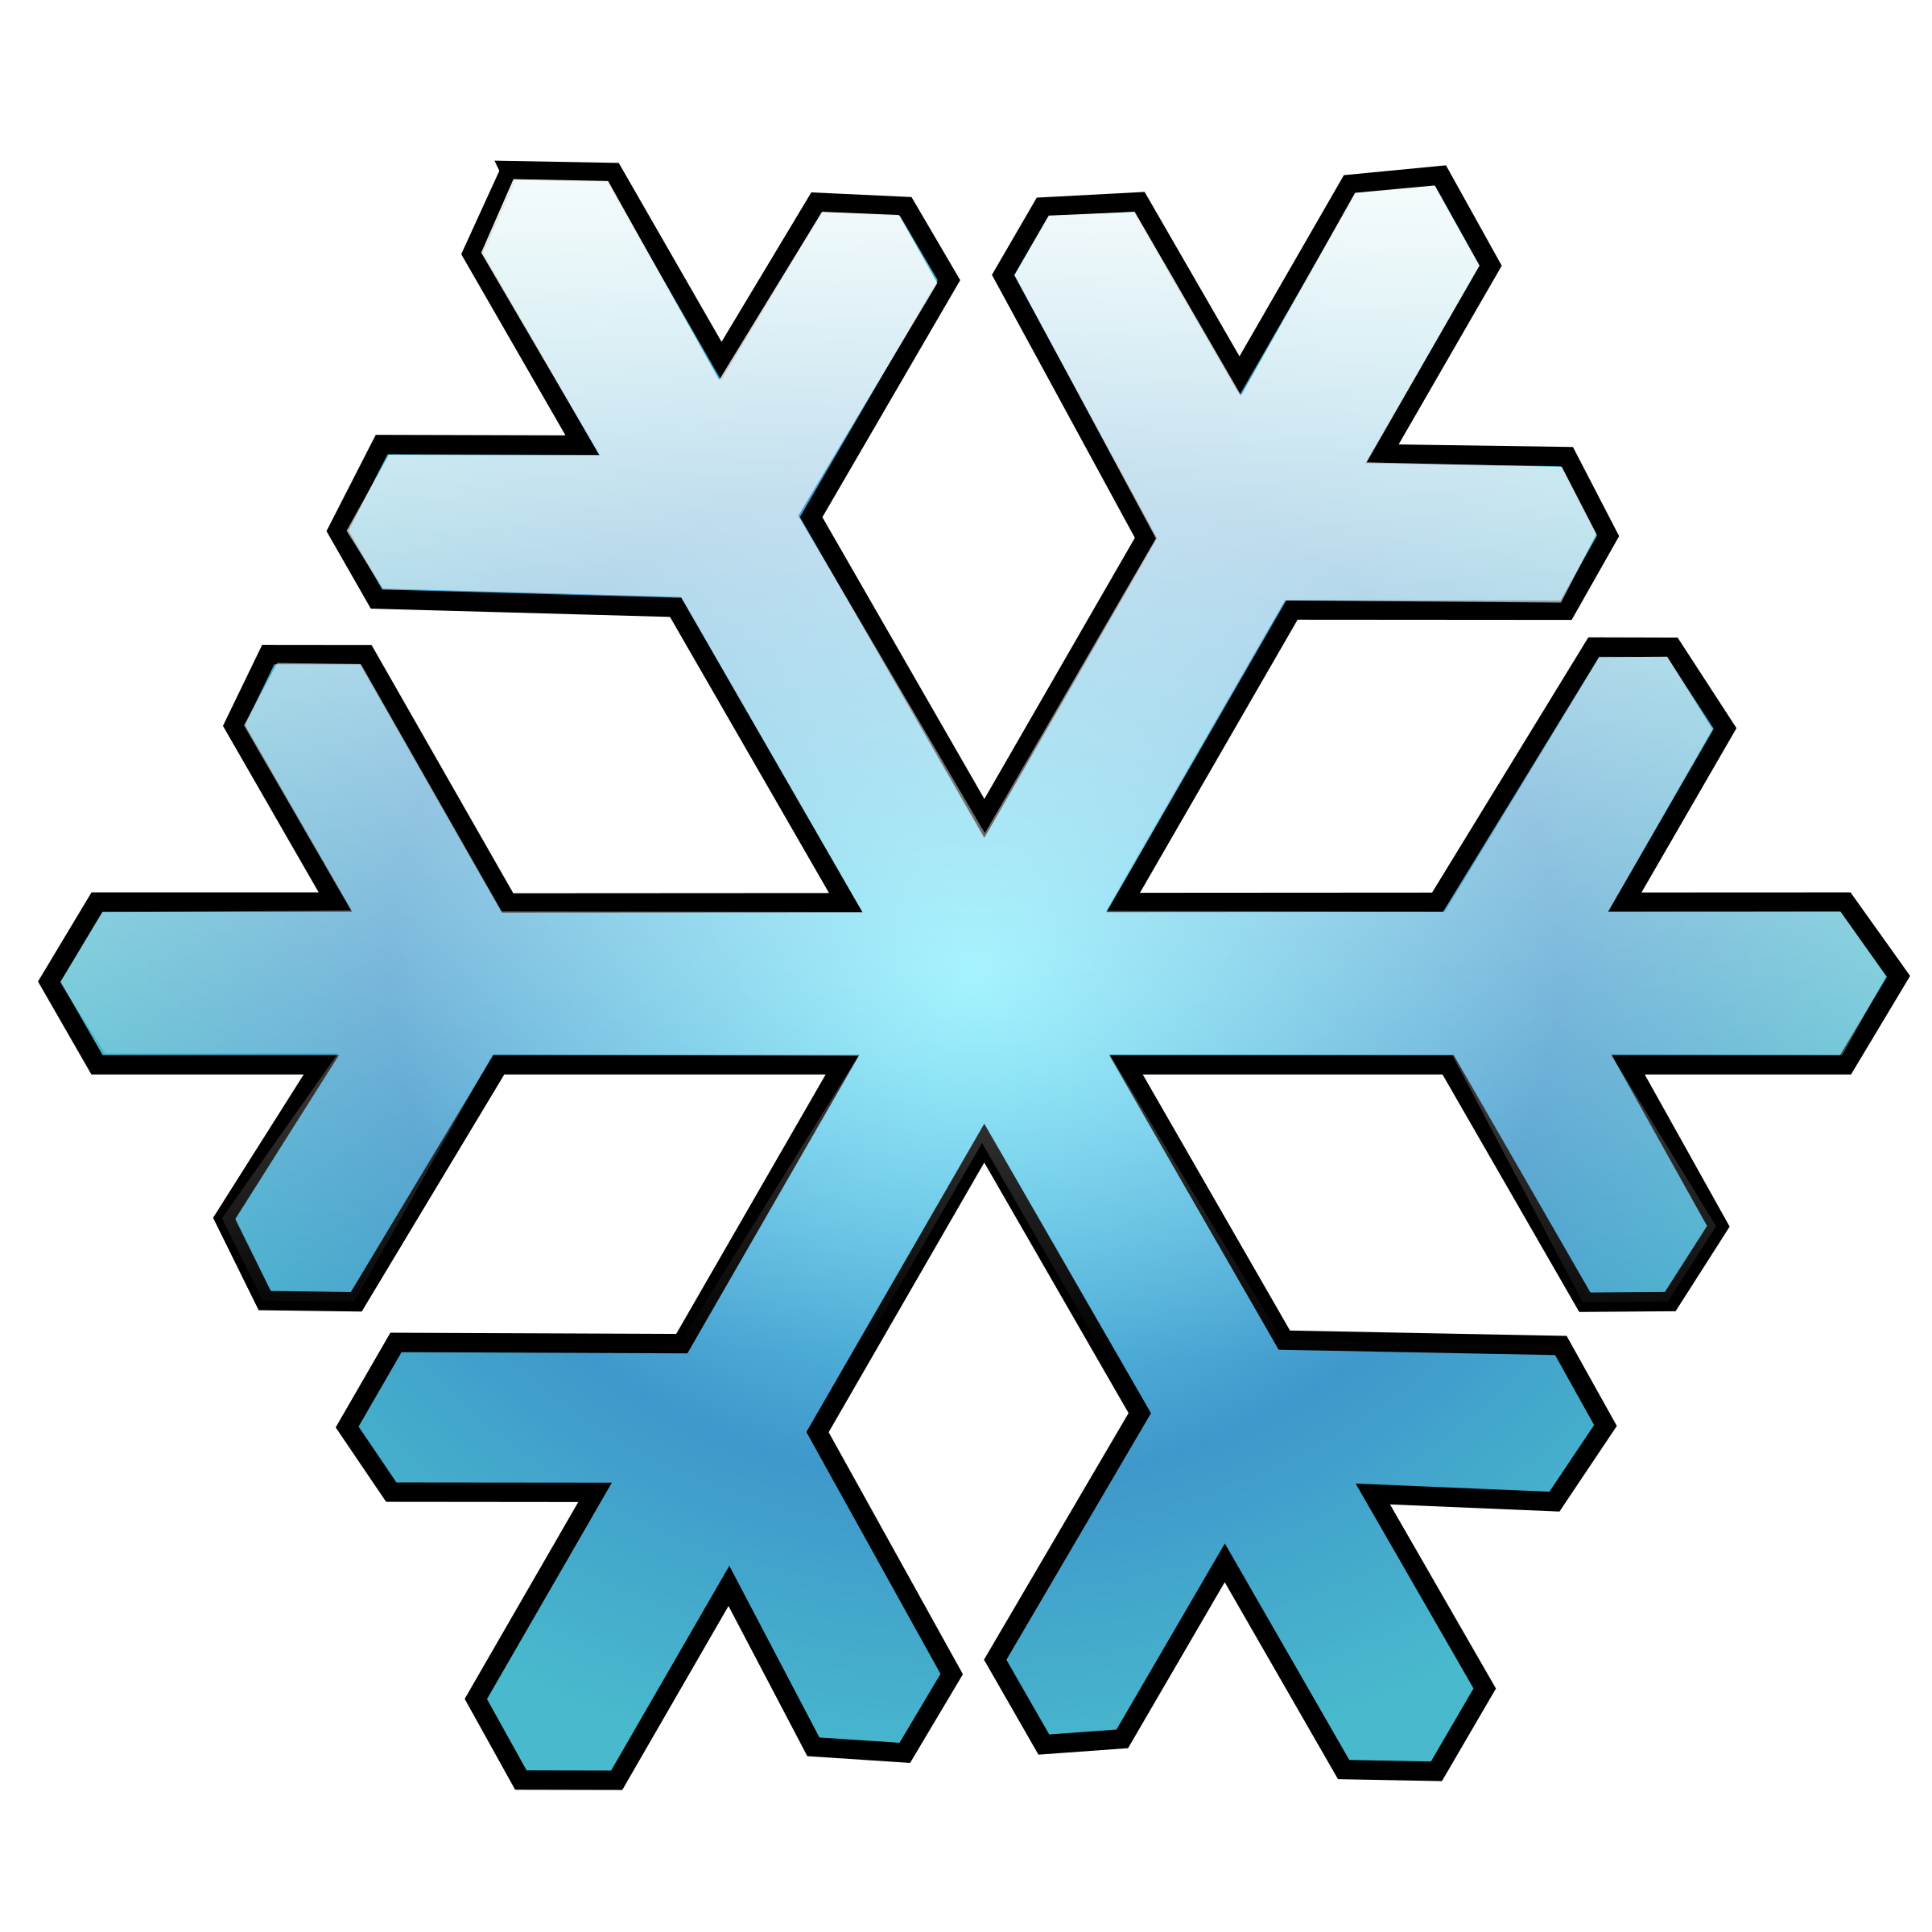 clip free library Flake clipart simple snowflake. By bocian a blue